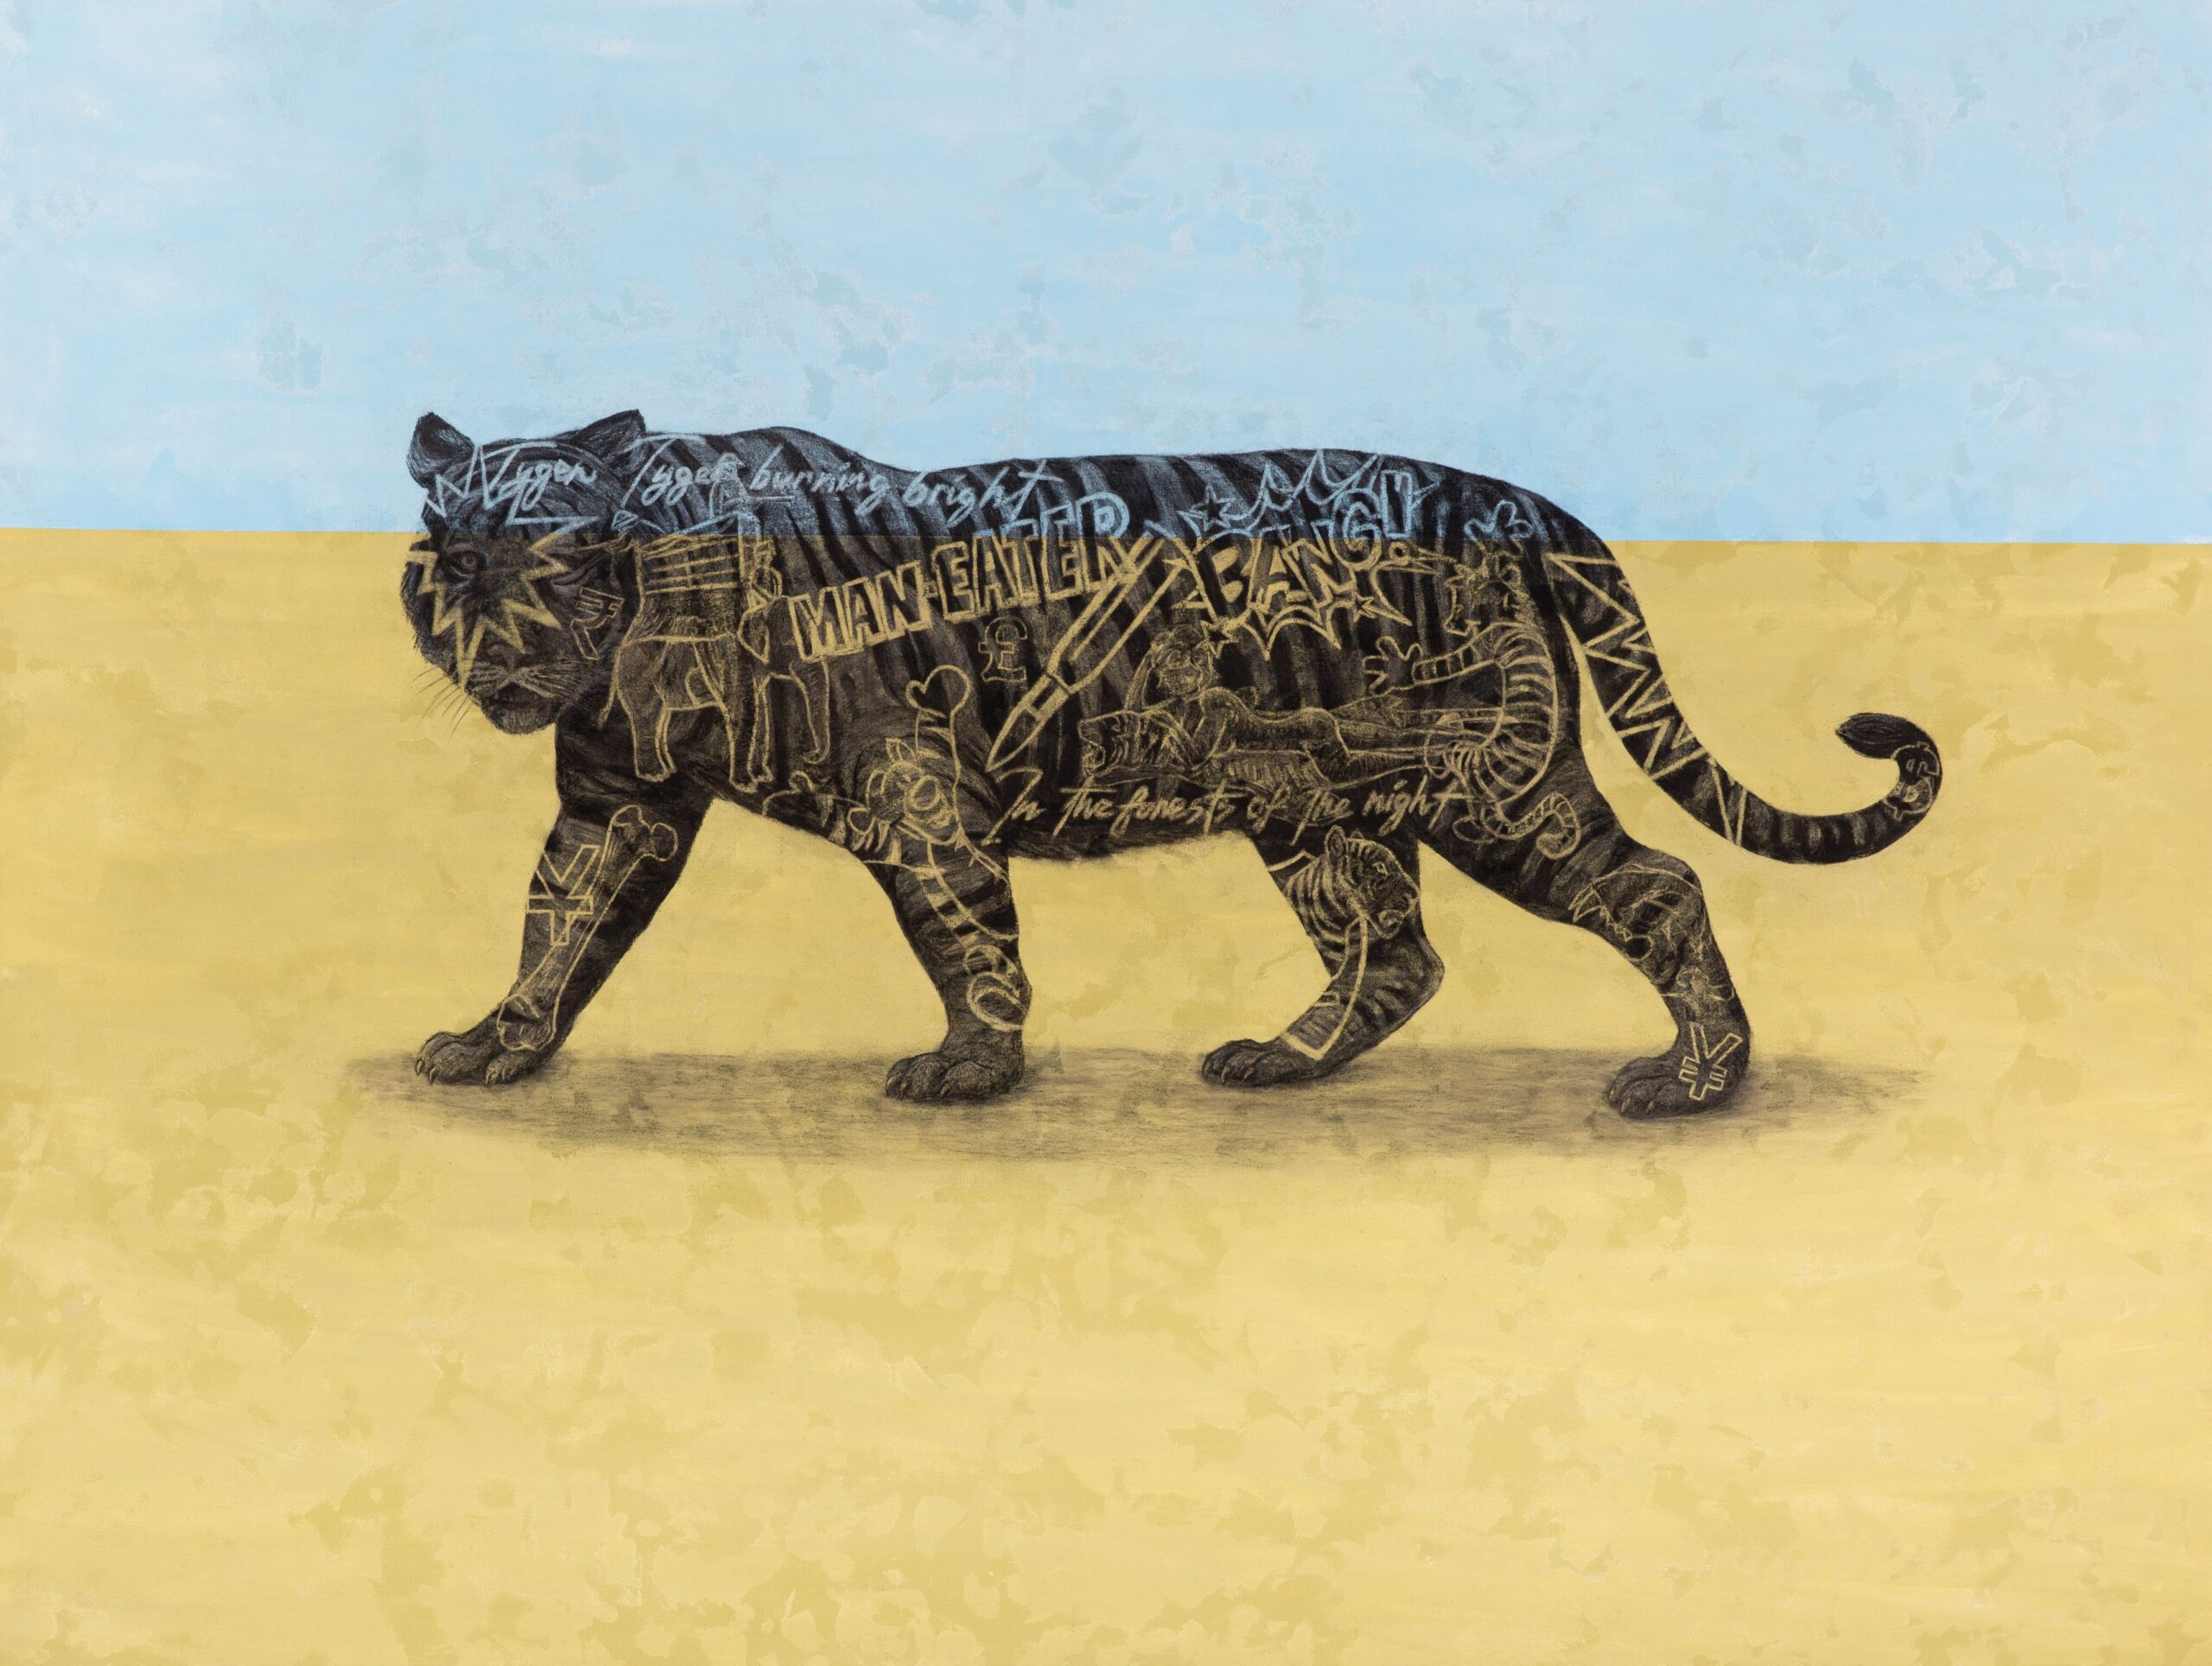 The Bengal Tiger, 2020. Charcoal and acrylic on canvas. 150 x 200 cm.